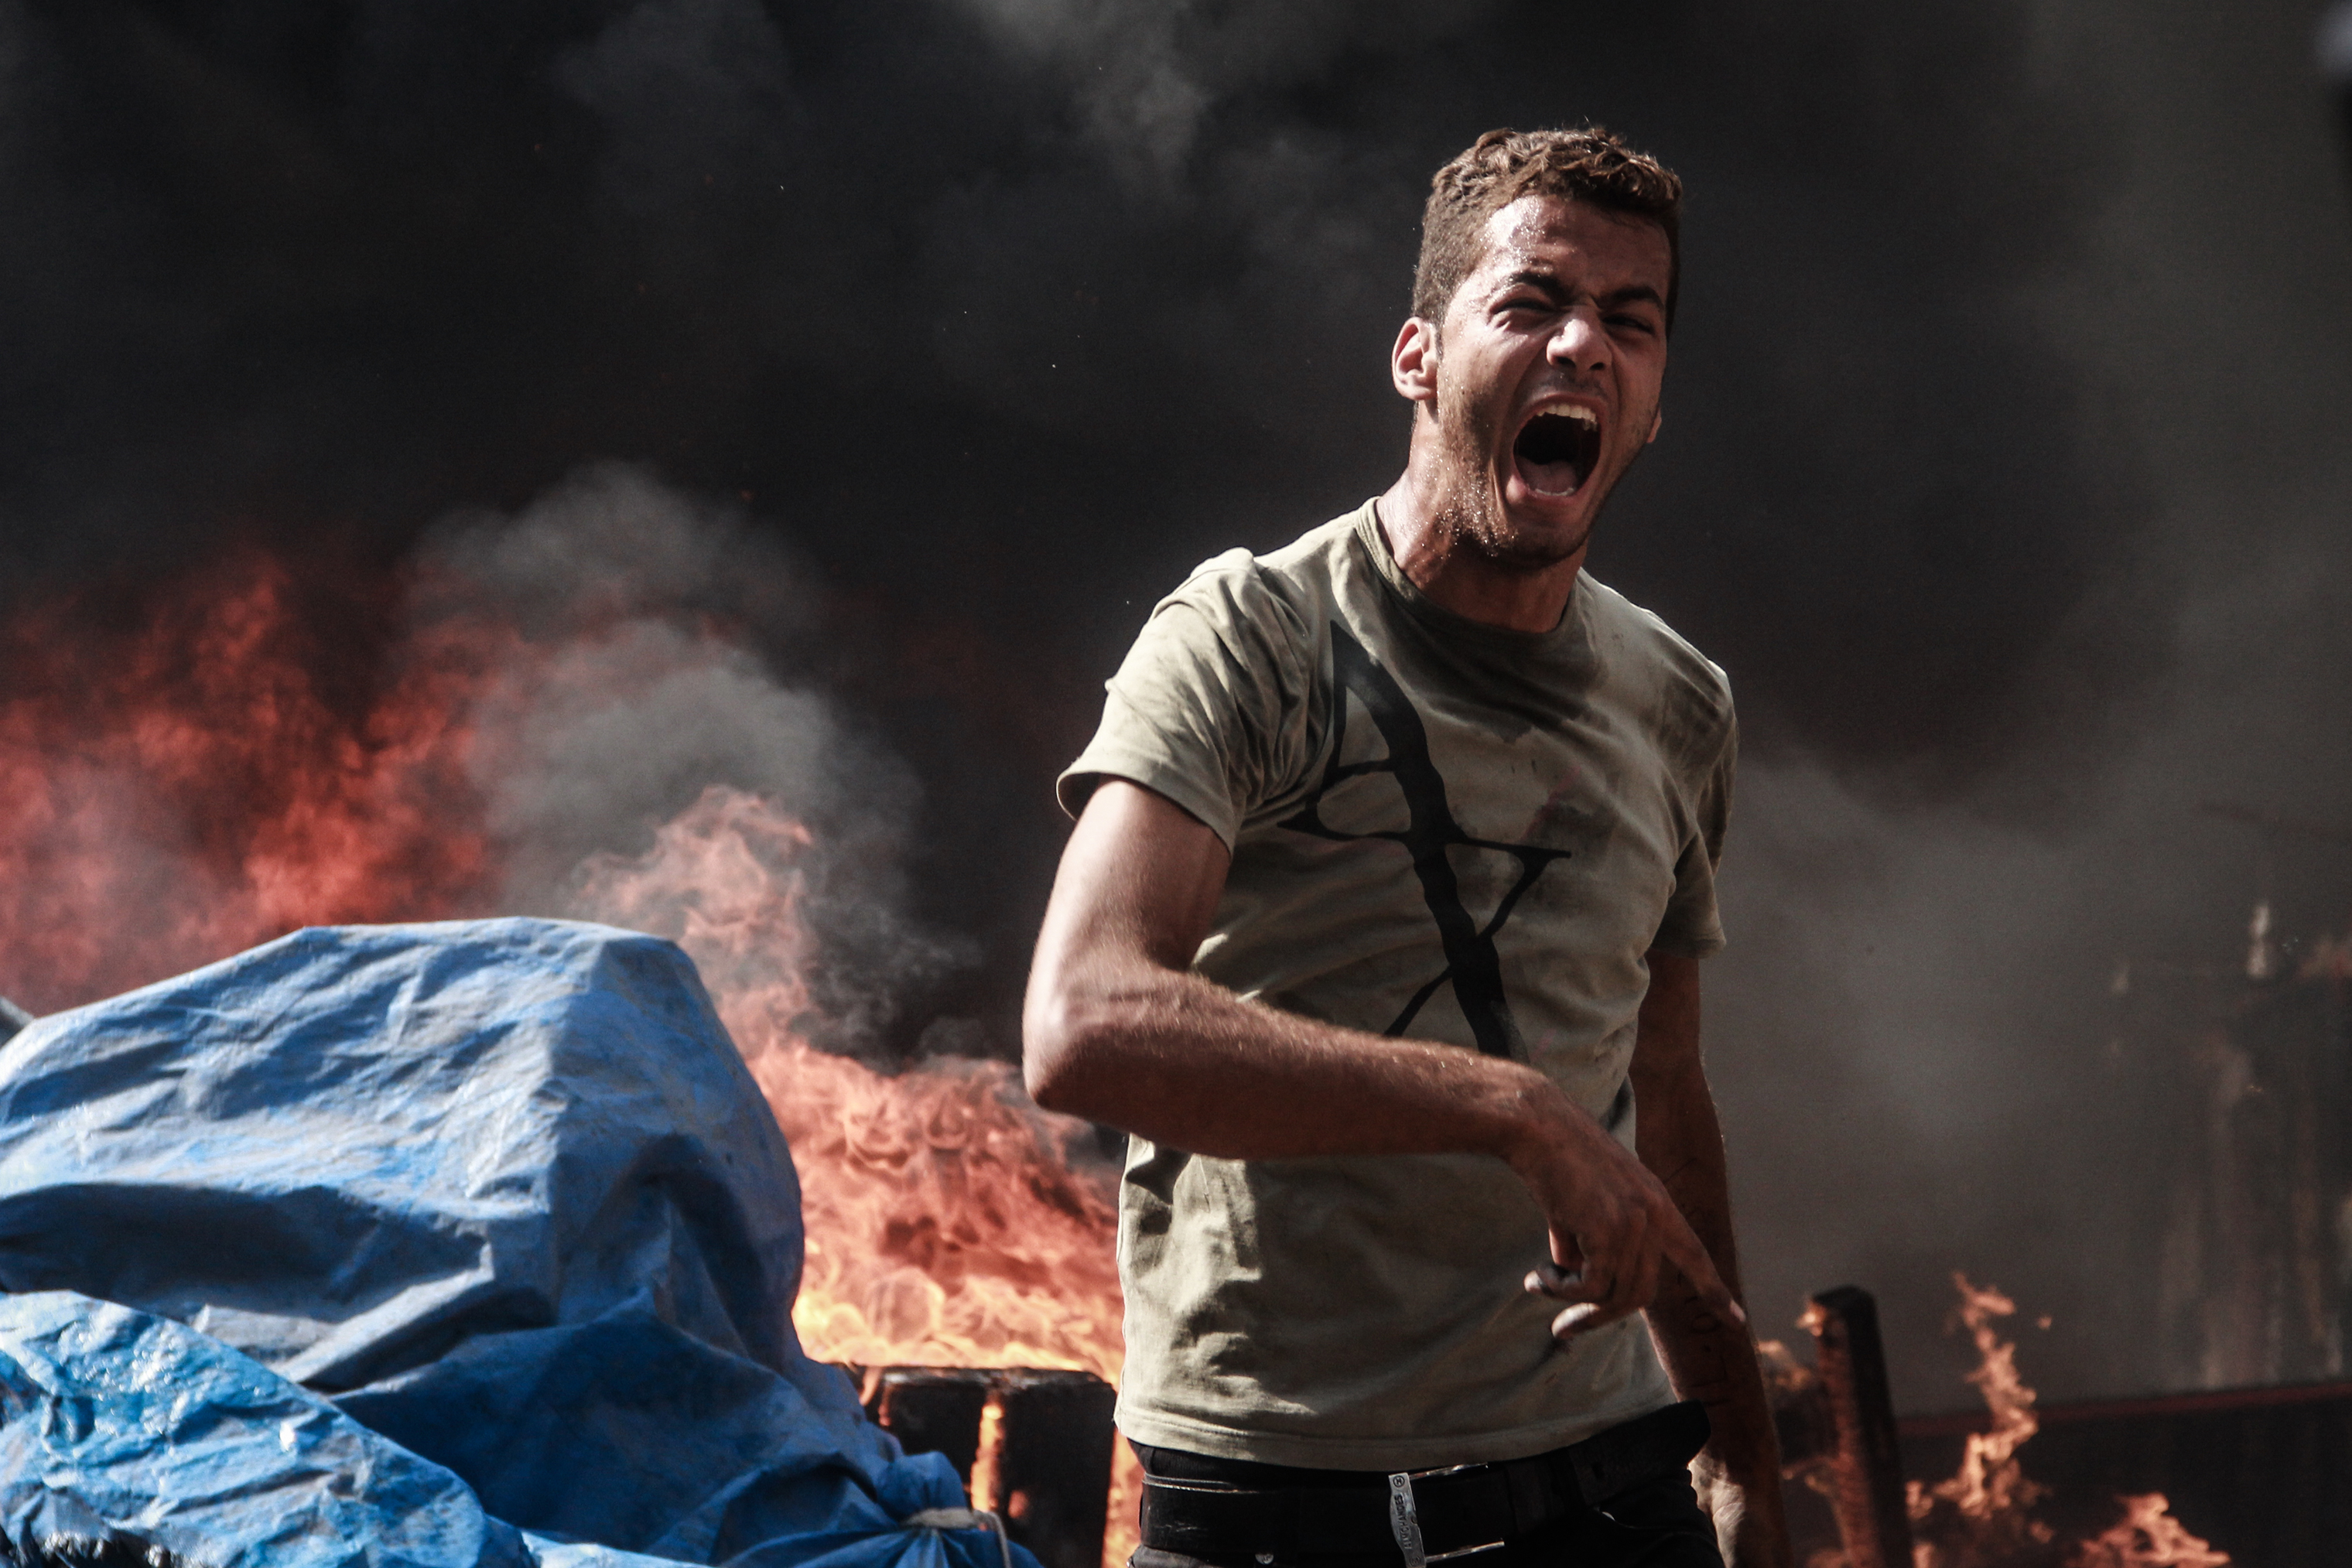 A man yells in the burning ruins of the square.